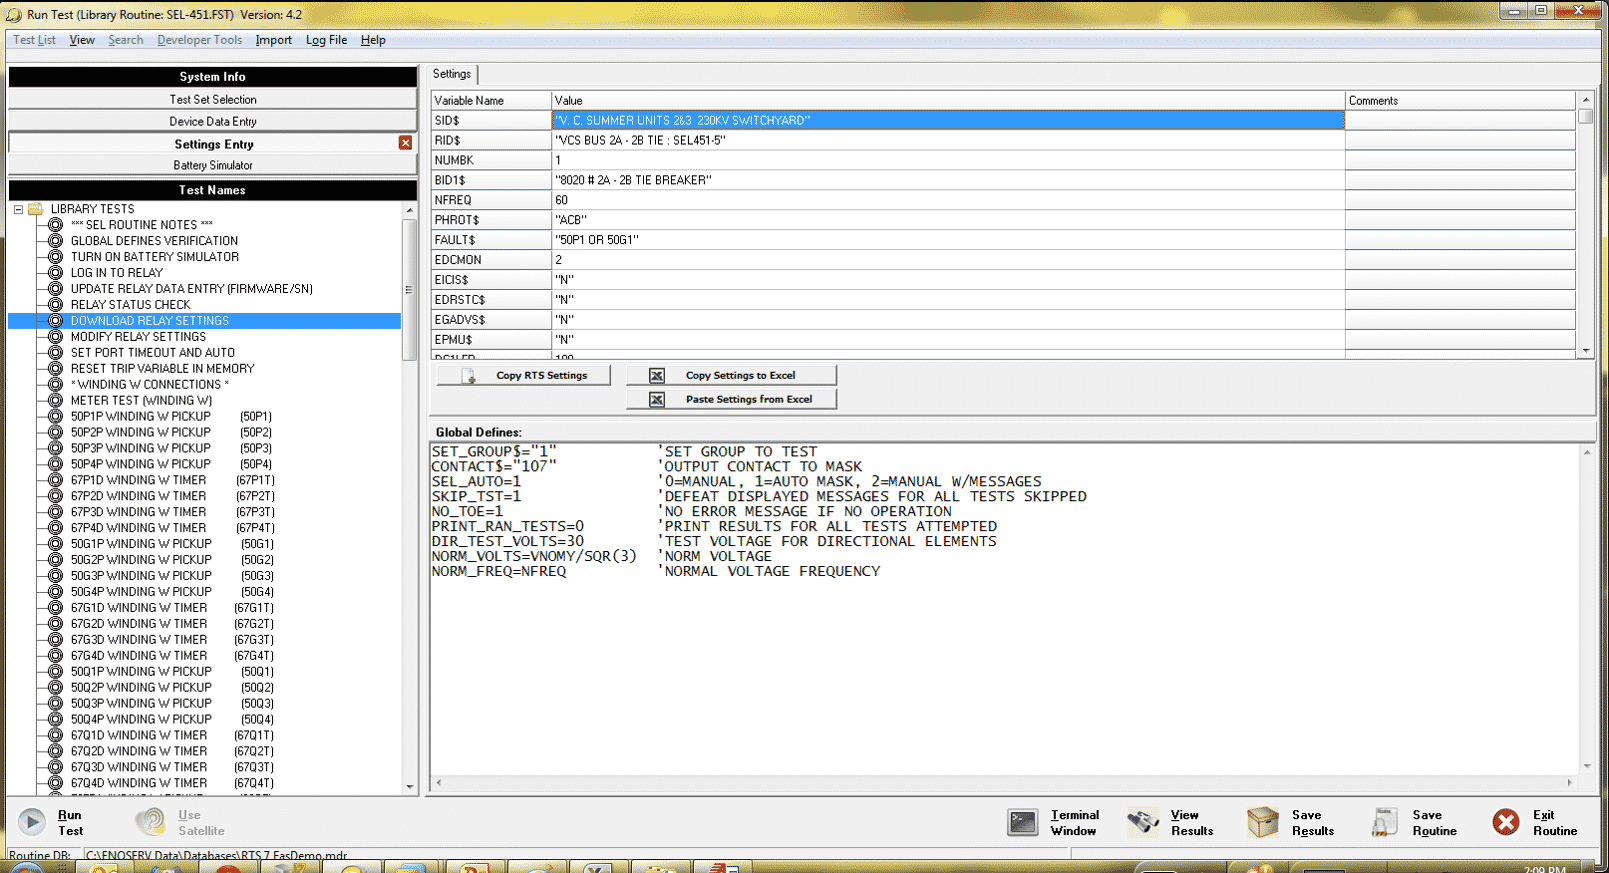 Enoserv Rts 174 Protection Testing Software Doble